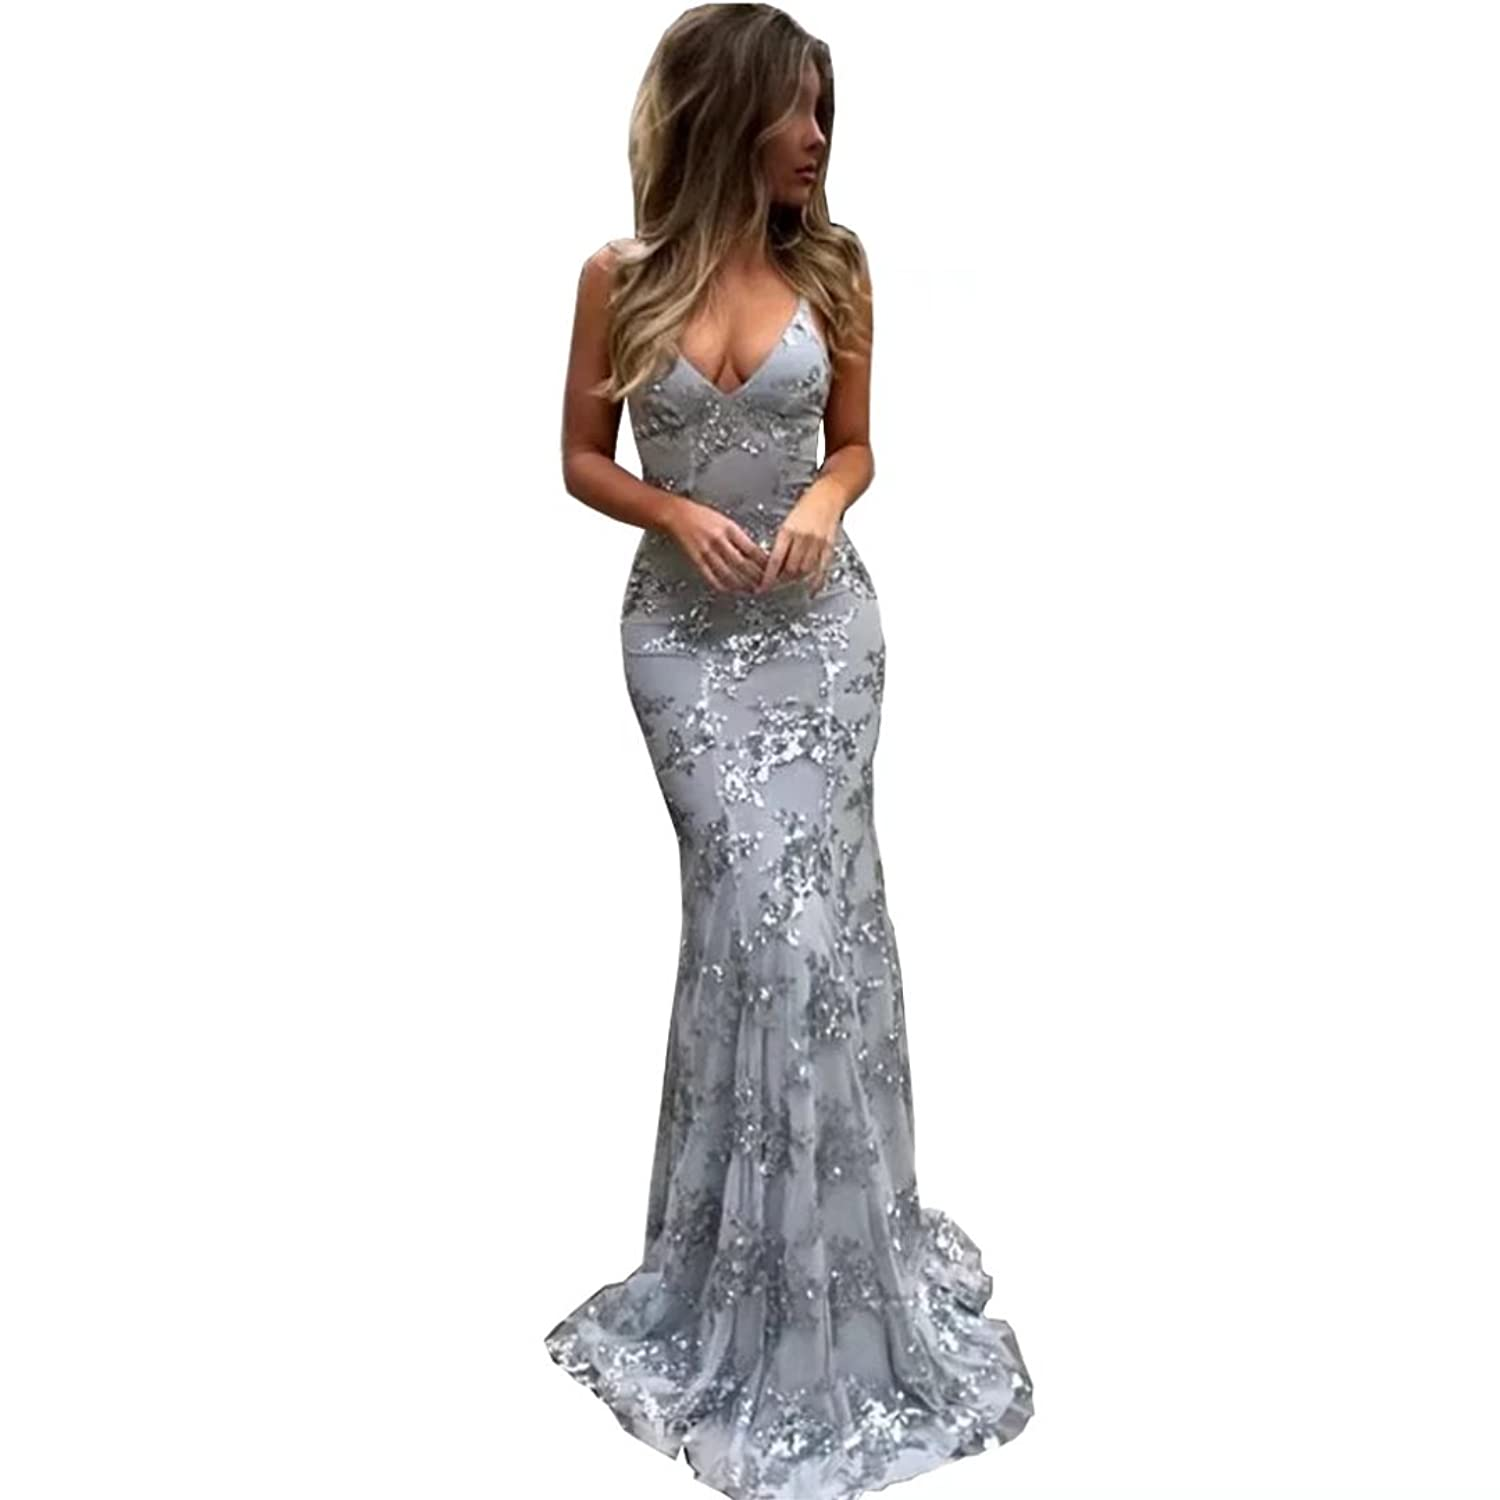 e12e9c4d4382 Fabric:Lace,Appliques,Sequins;Built in Bra,backless prom dresses,Open back evening  gowns,prom dresses long. When you order the dress,please check the left ...